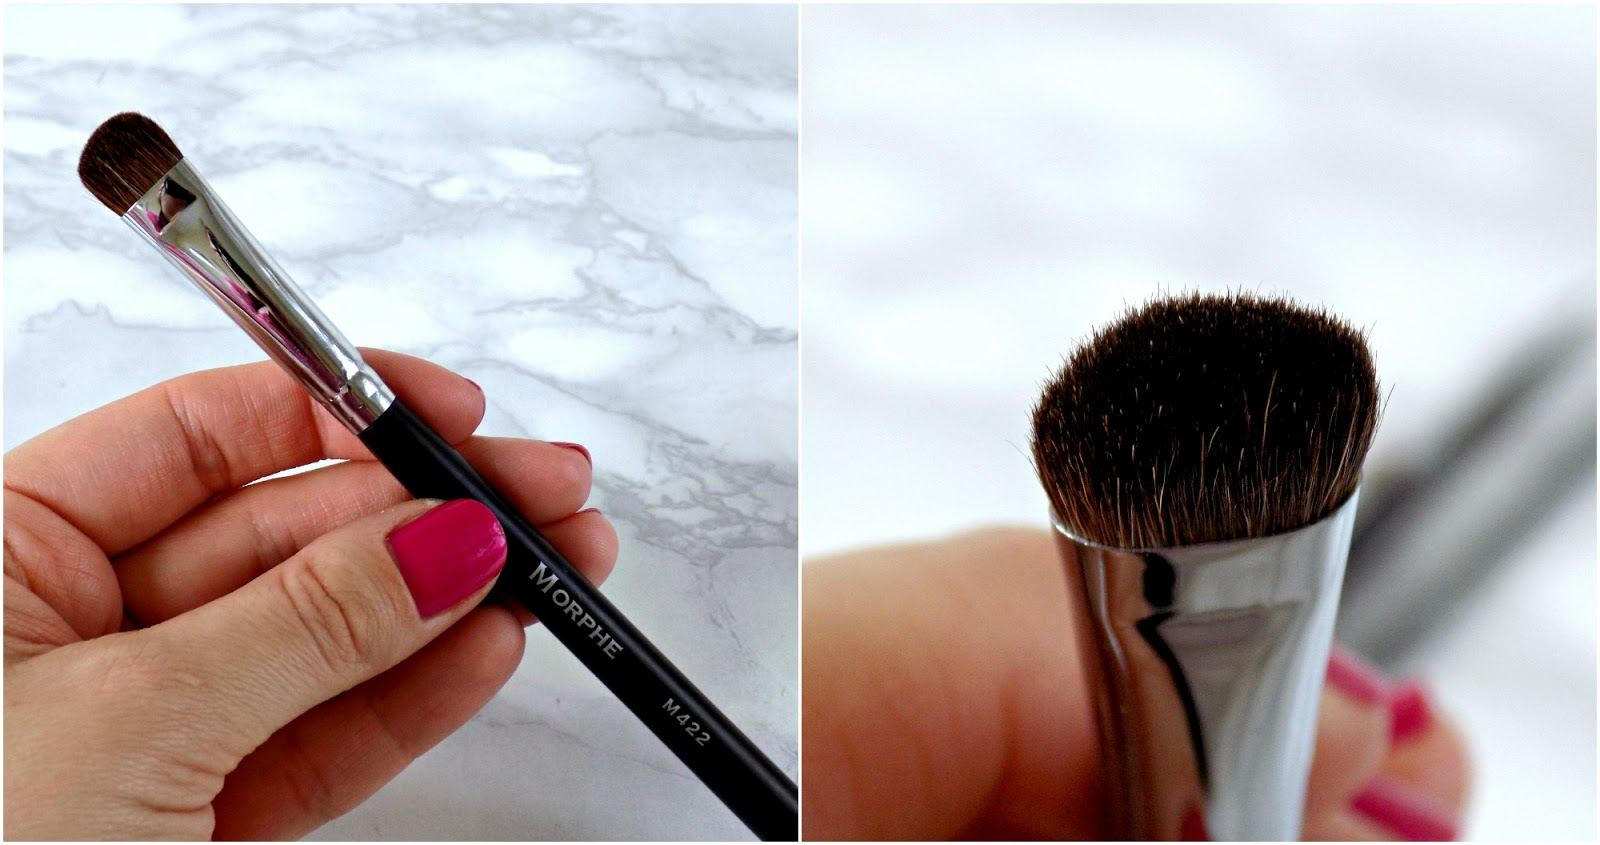 Morphe Brushes M422